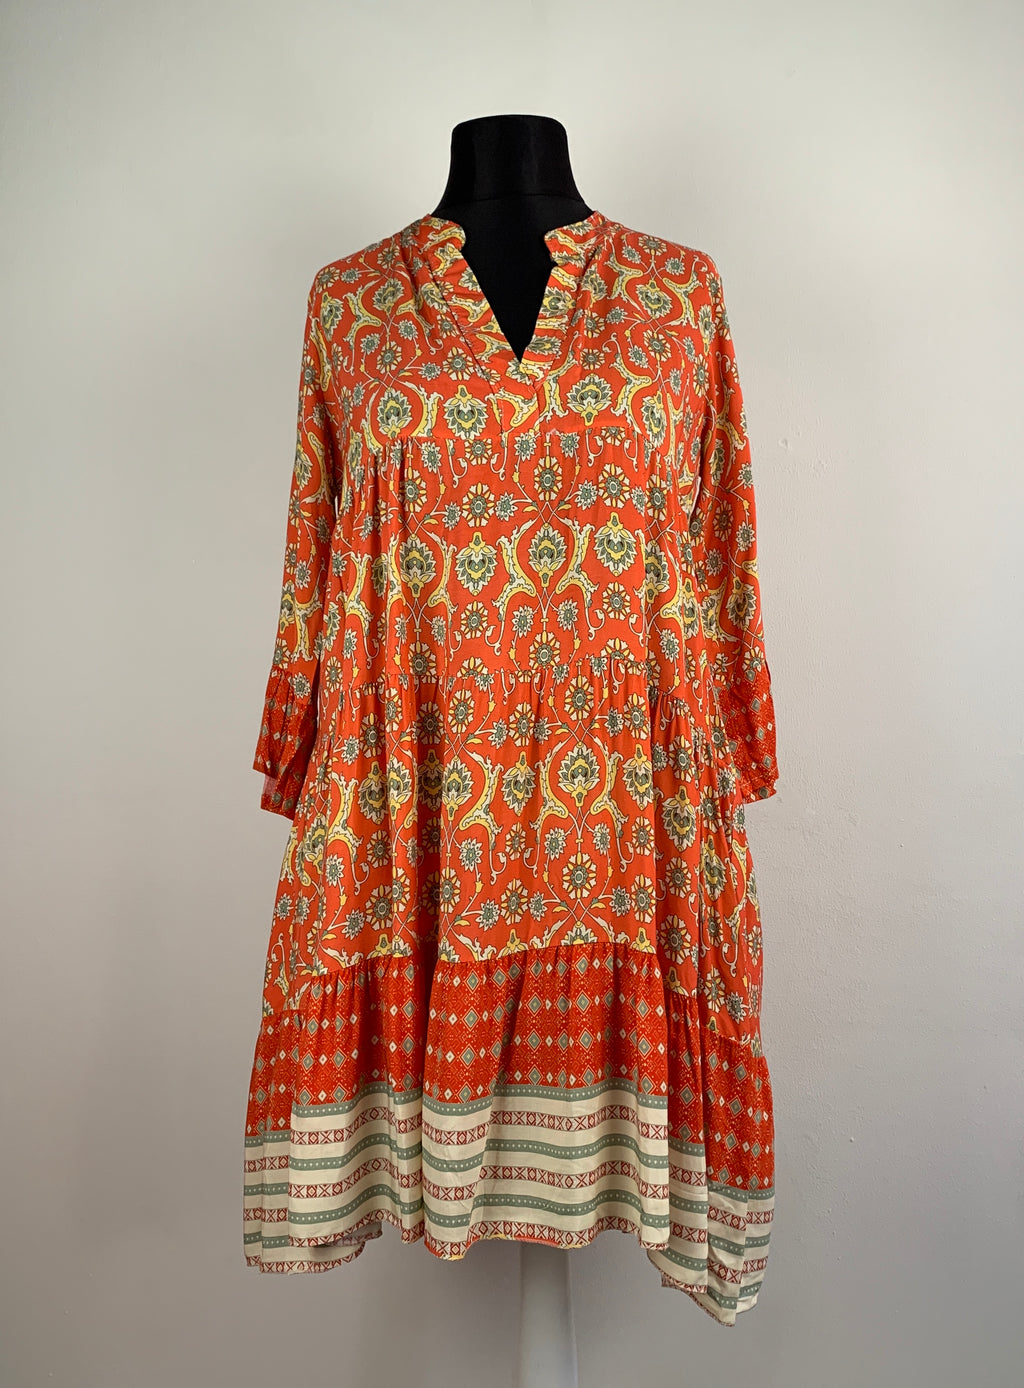 Hängerchenkleid Tunika Kleid Muster Orange Boho